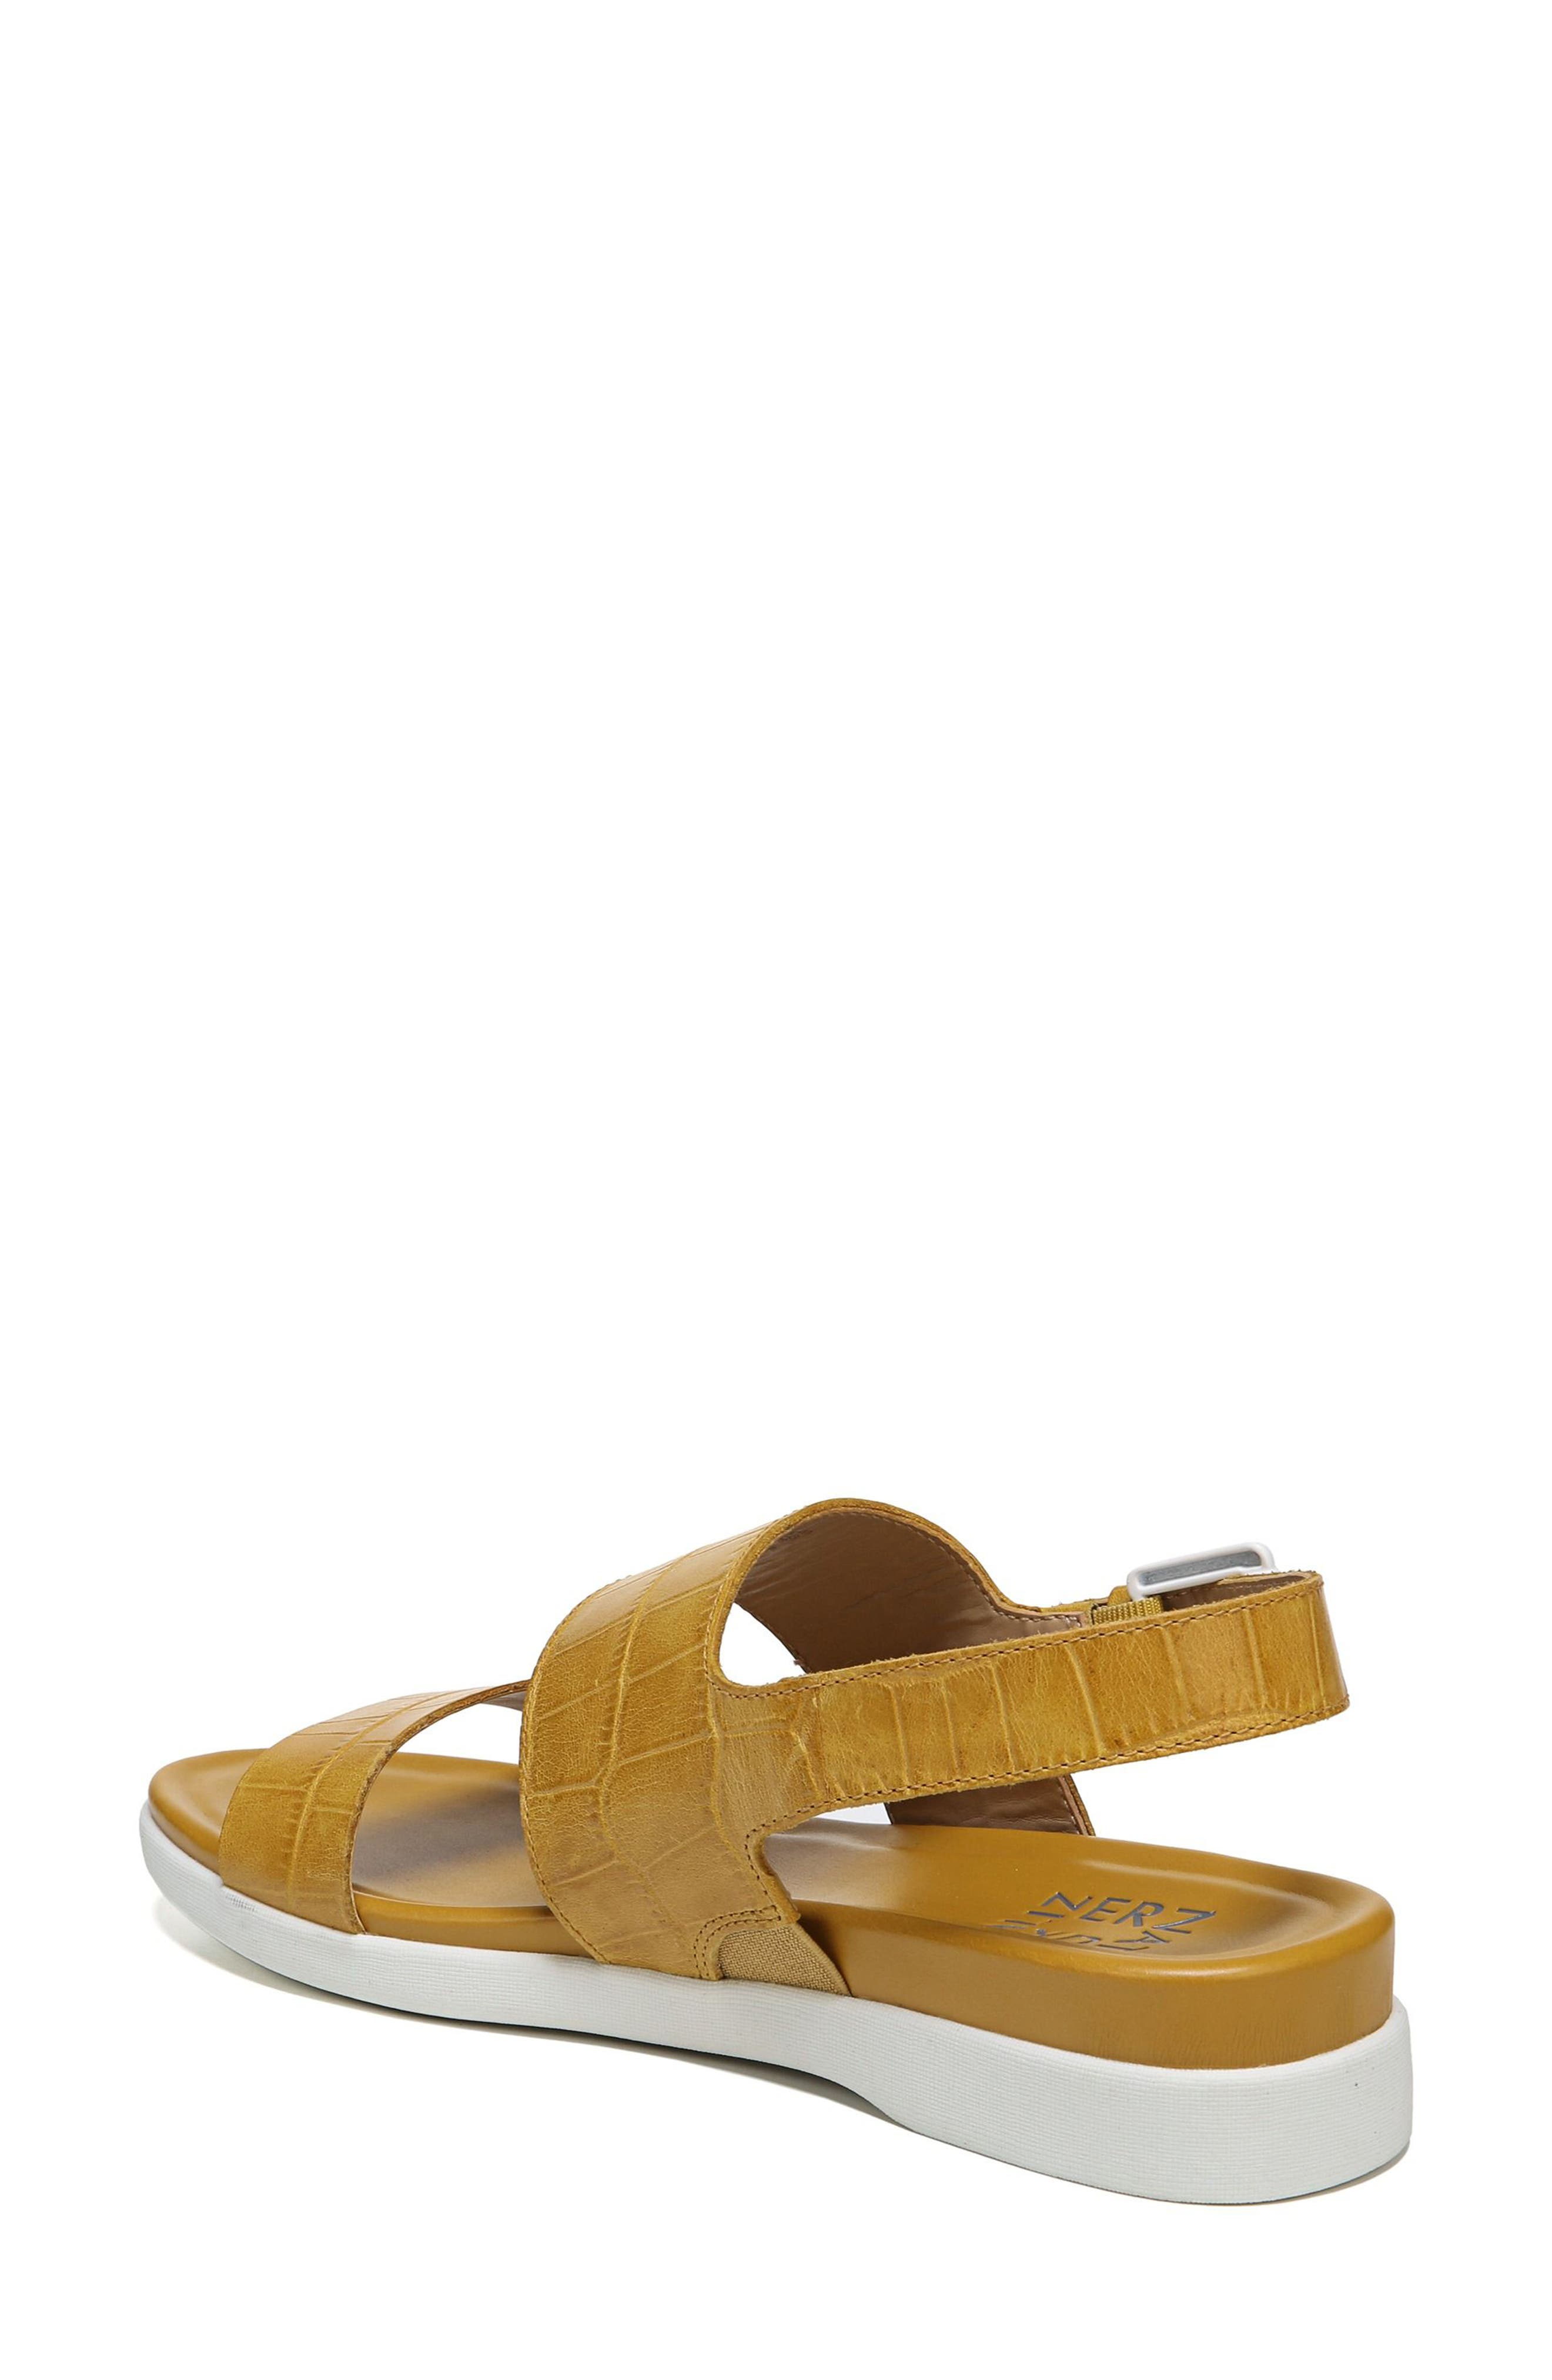 Emory Wedge Sandal,                             Alternate thumbnail 2, color,                             Yellow Printed Leather